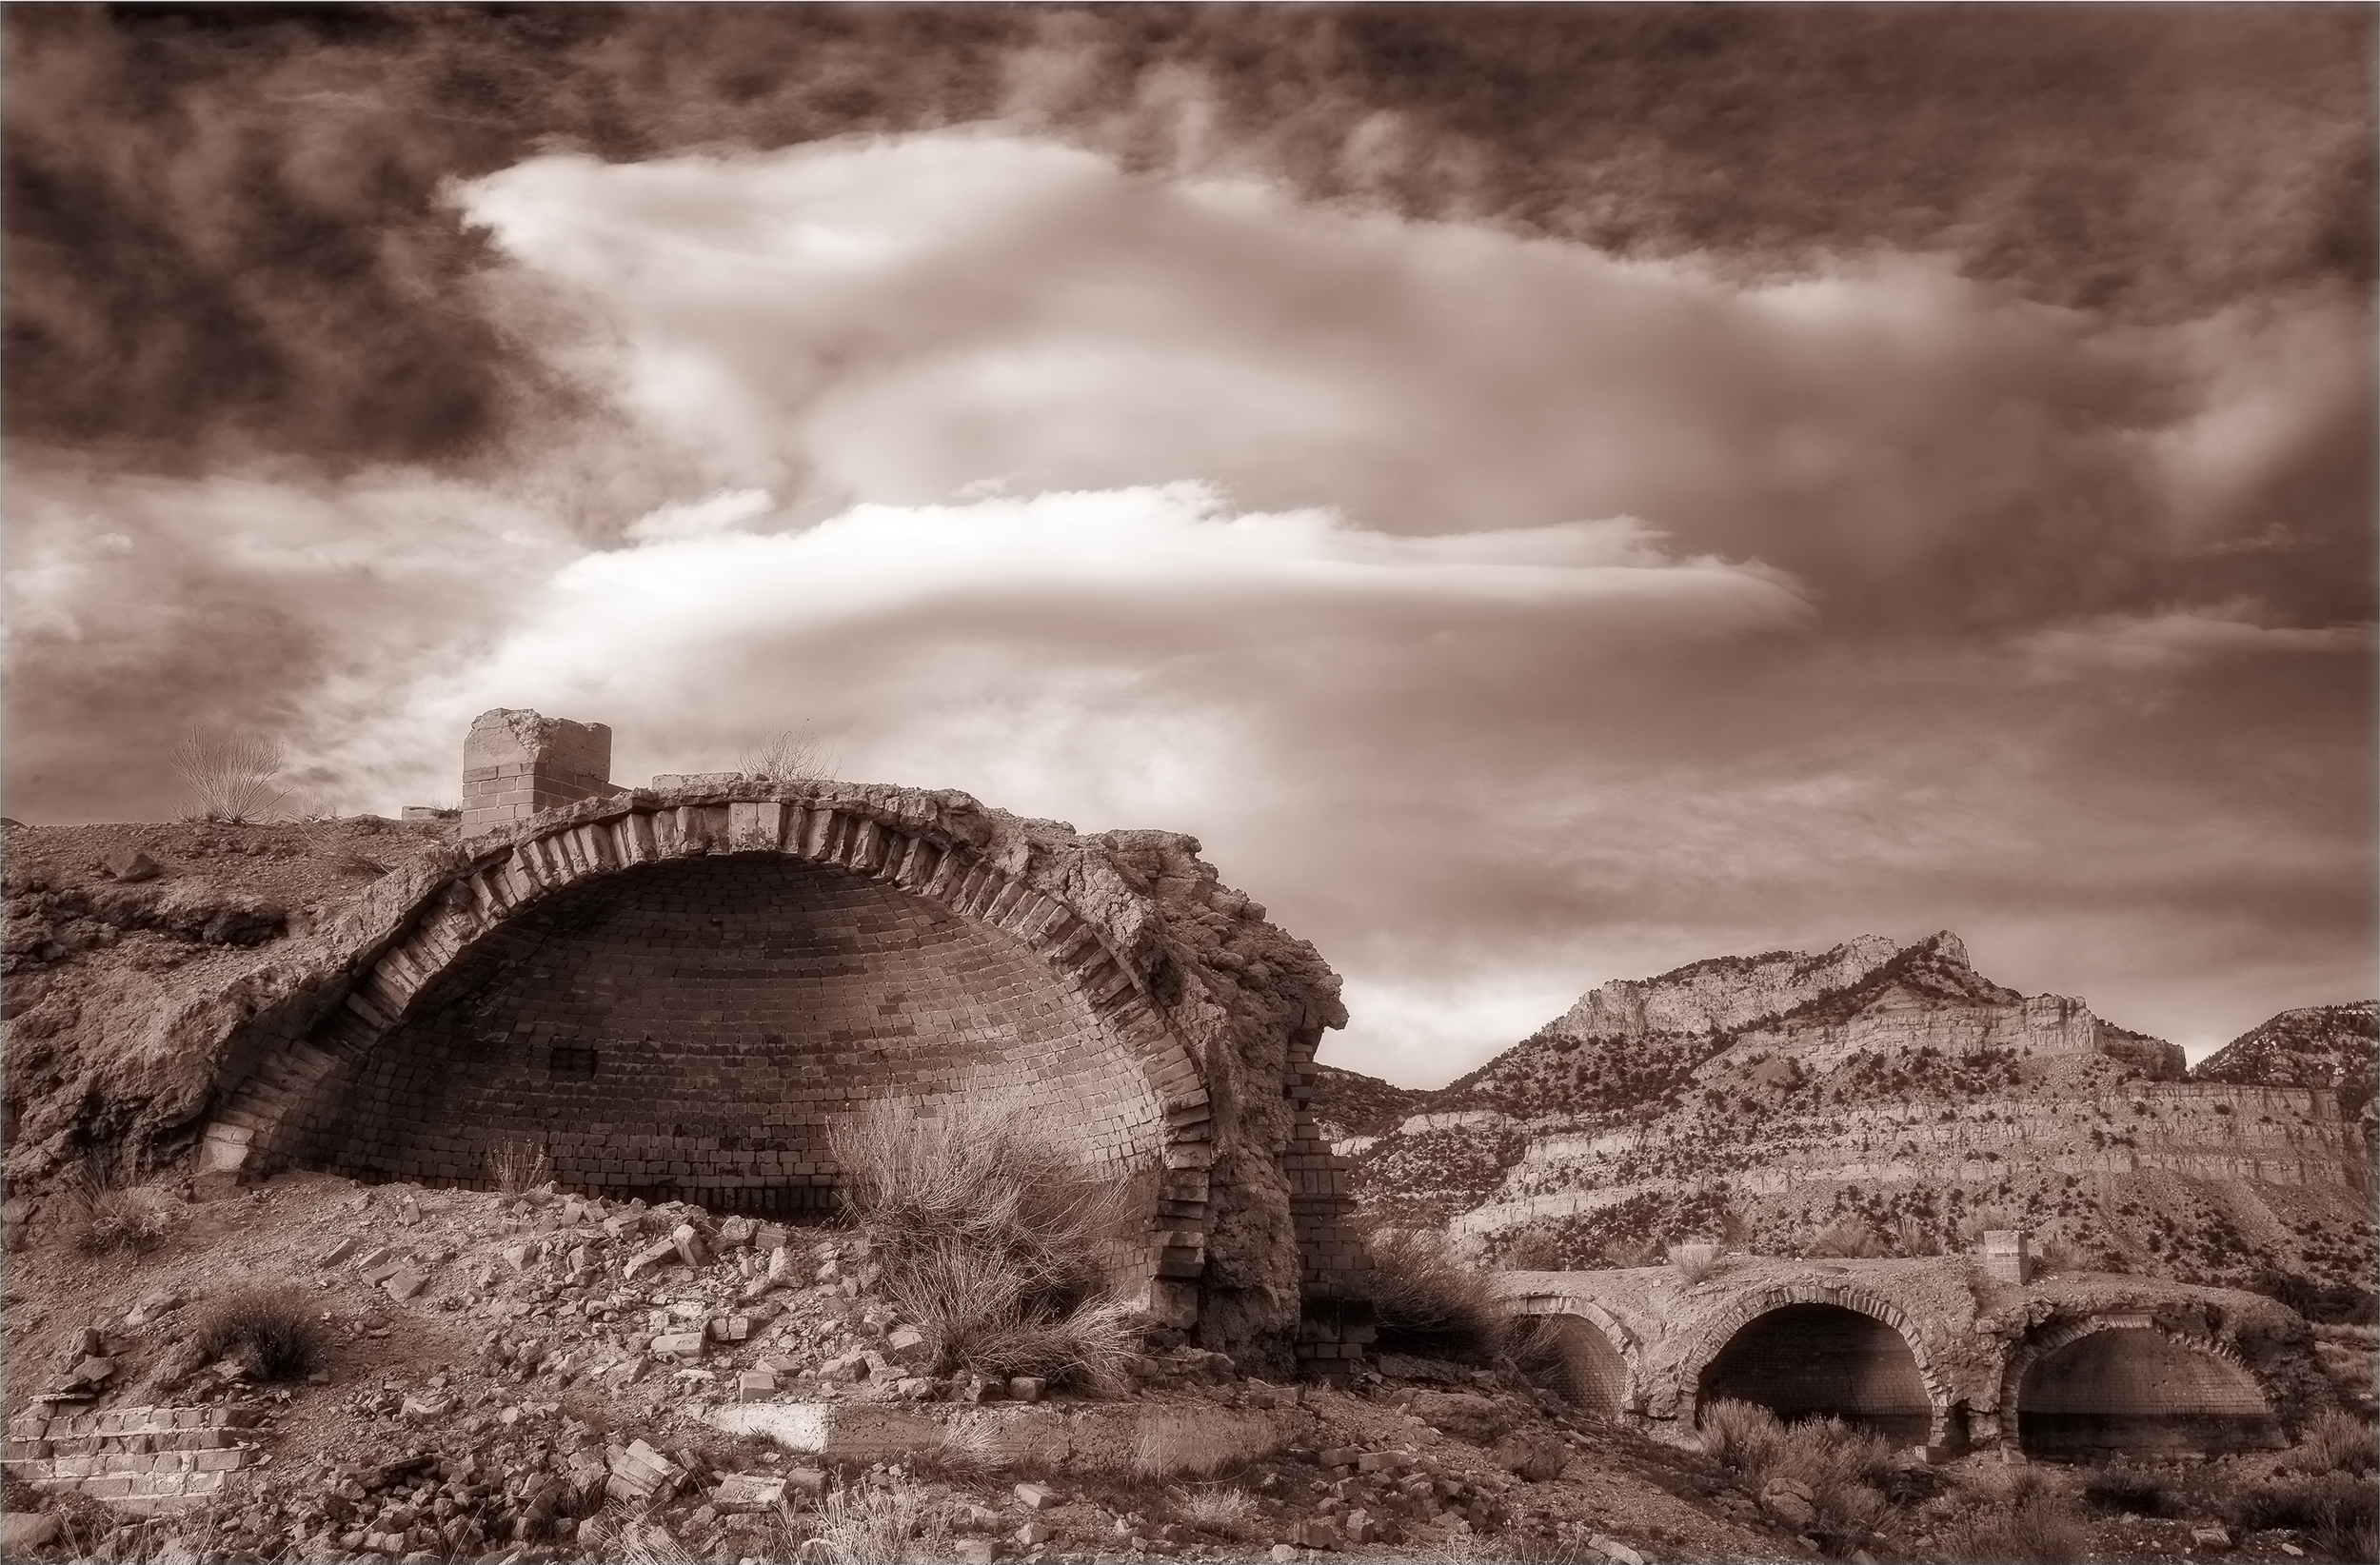 The Coke Ovens - Photogravure by Dave Hanson